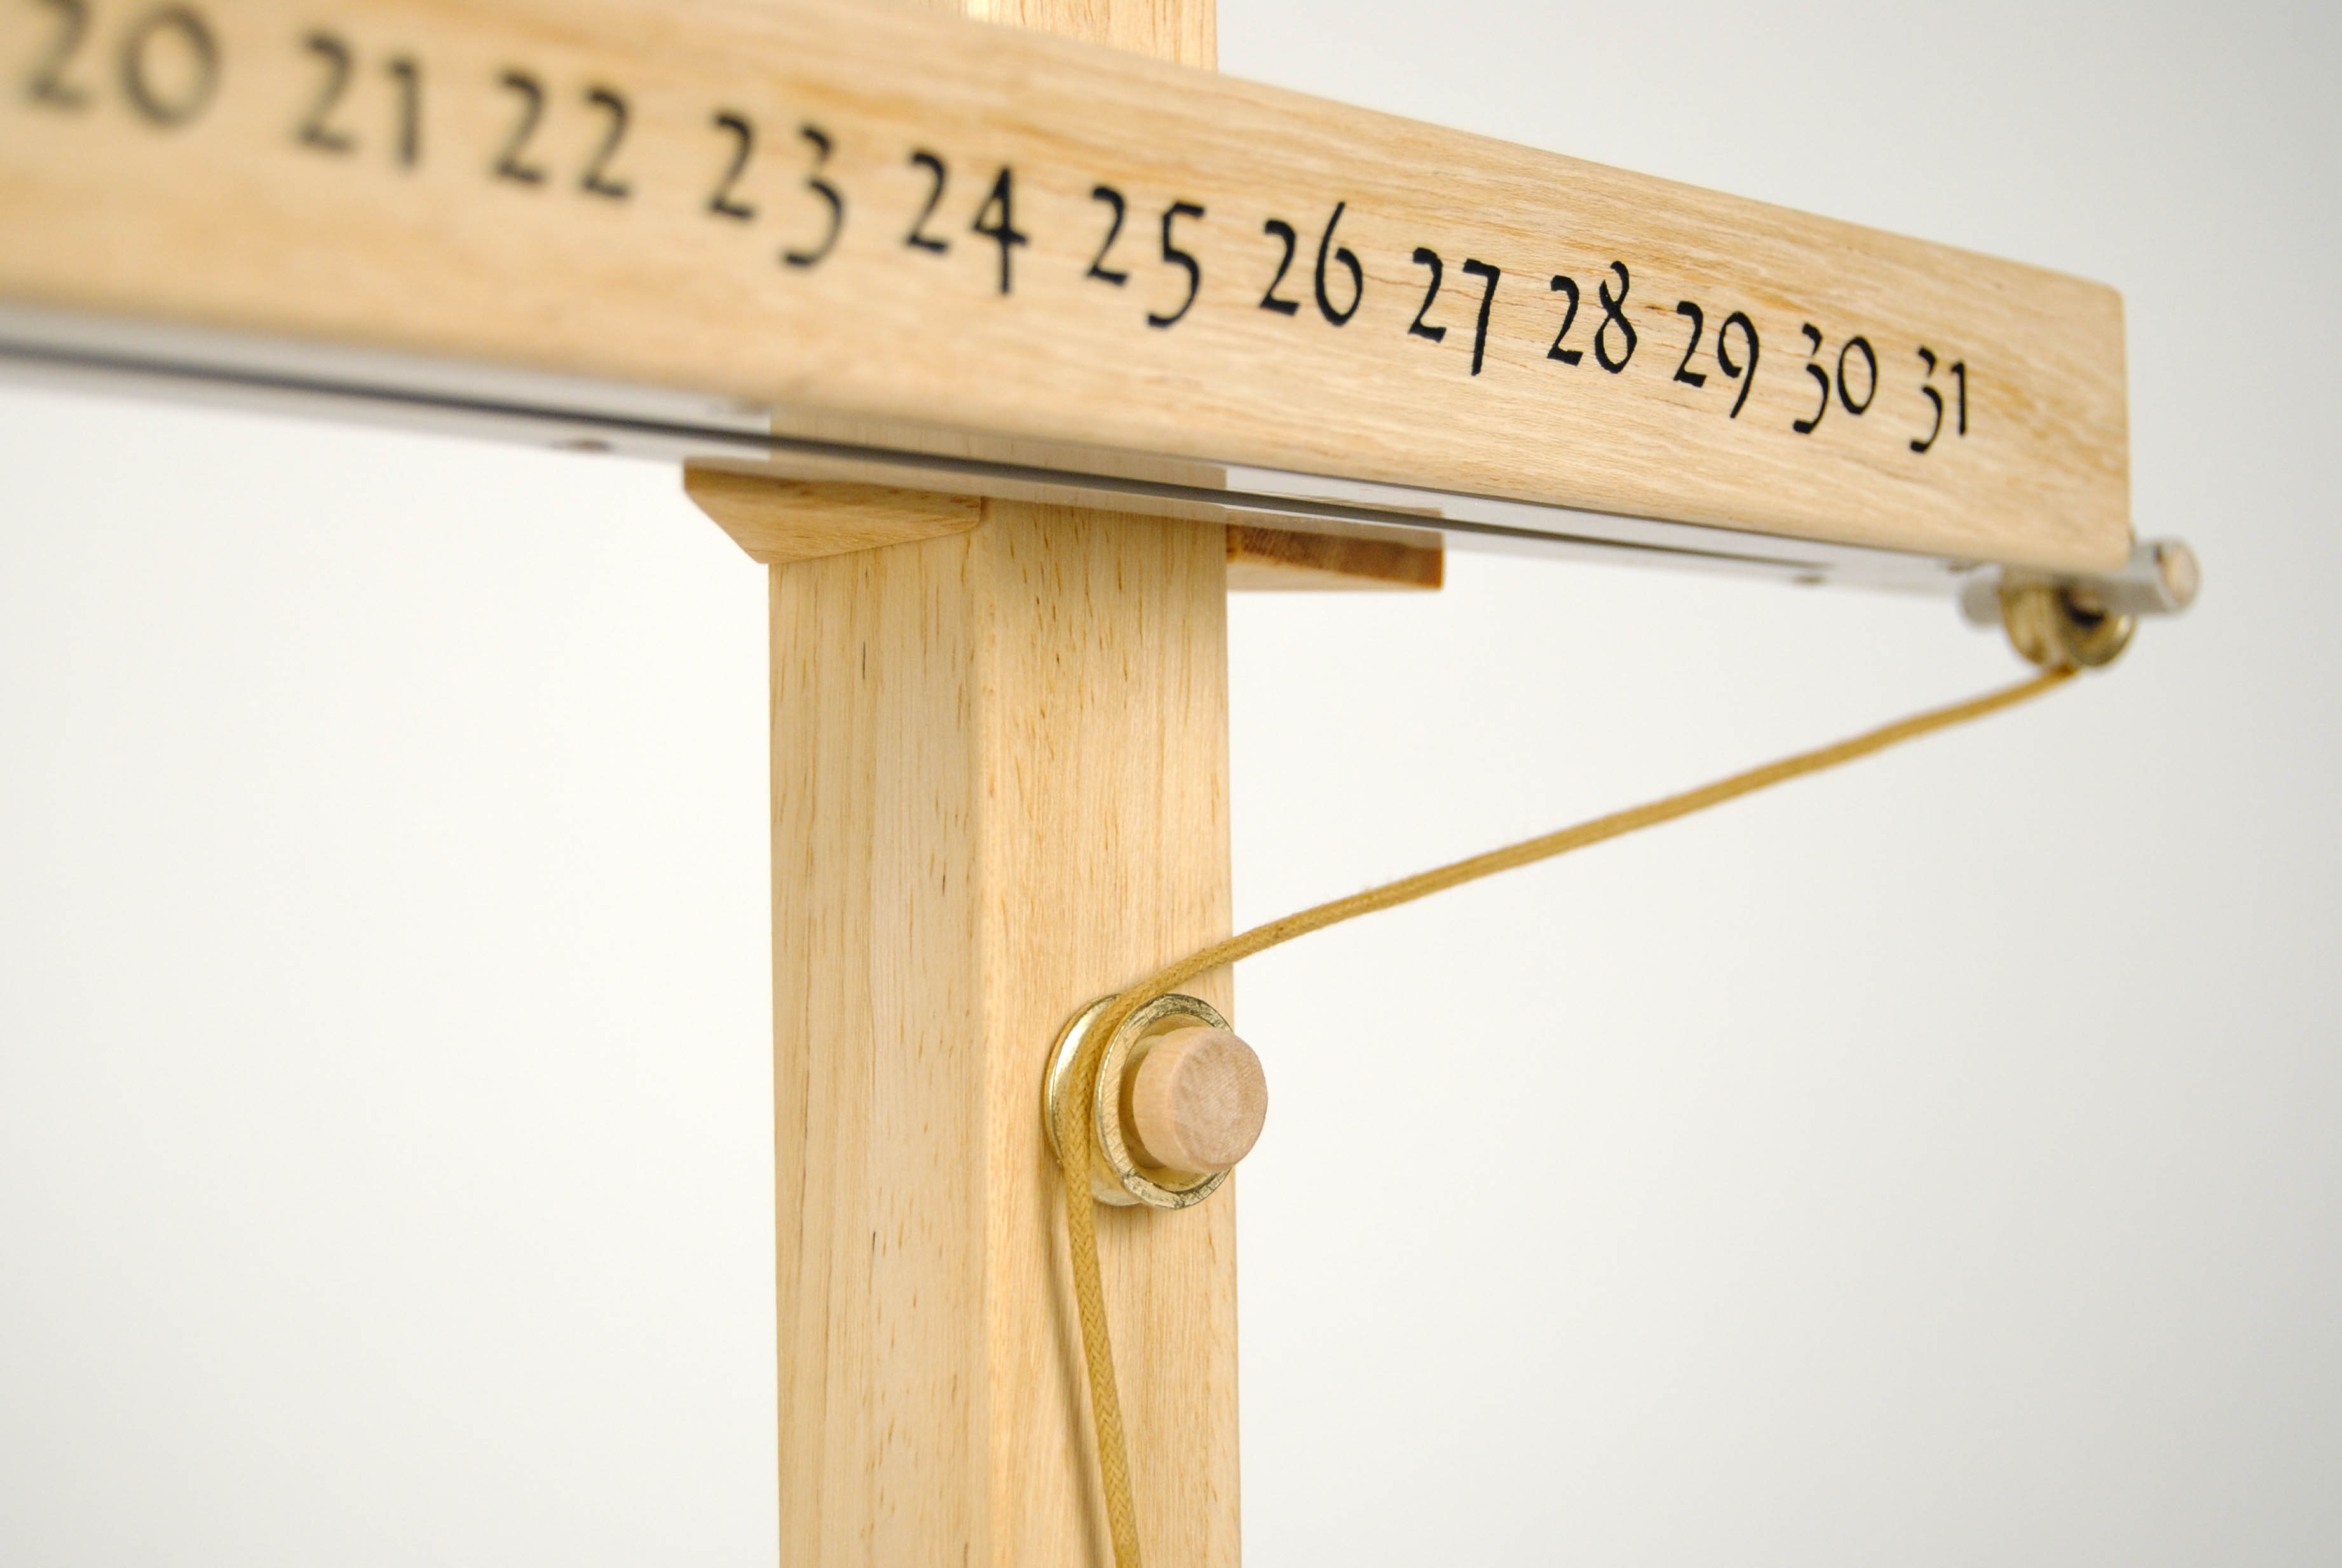 leonardo da vinci wooden calendar with printed numbers and rope for the date